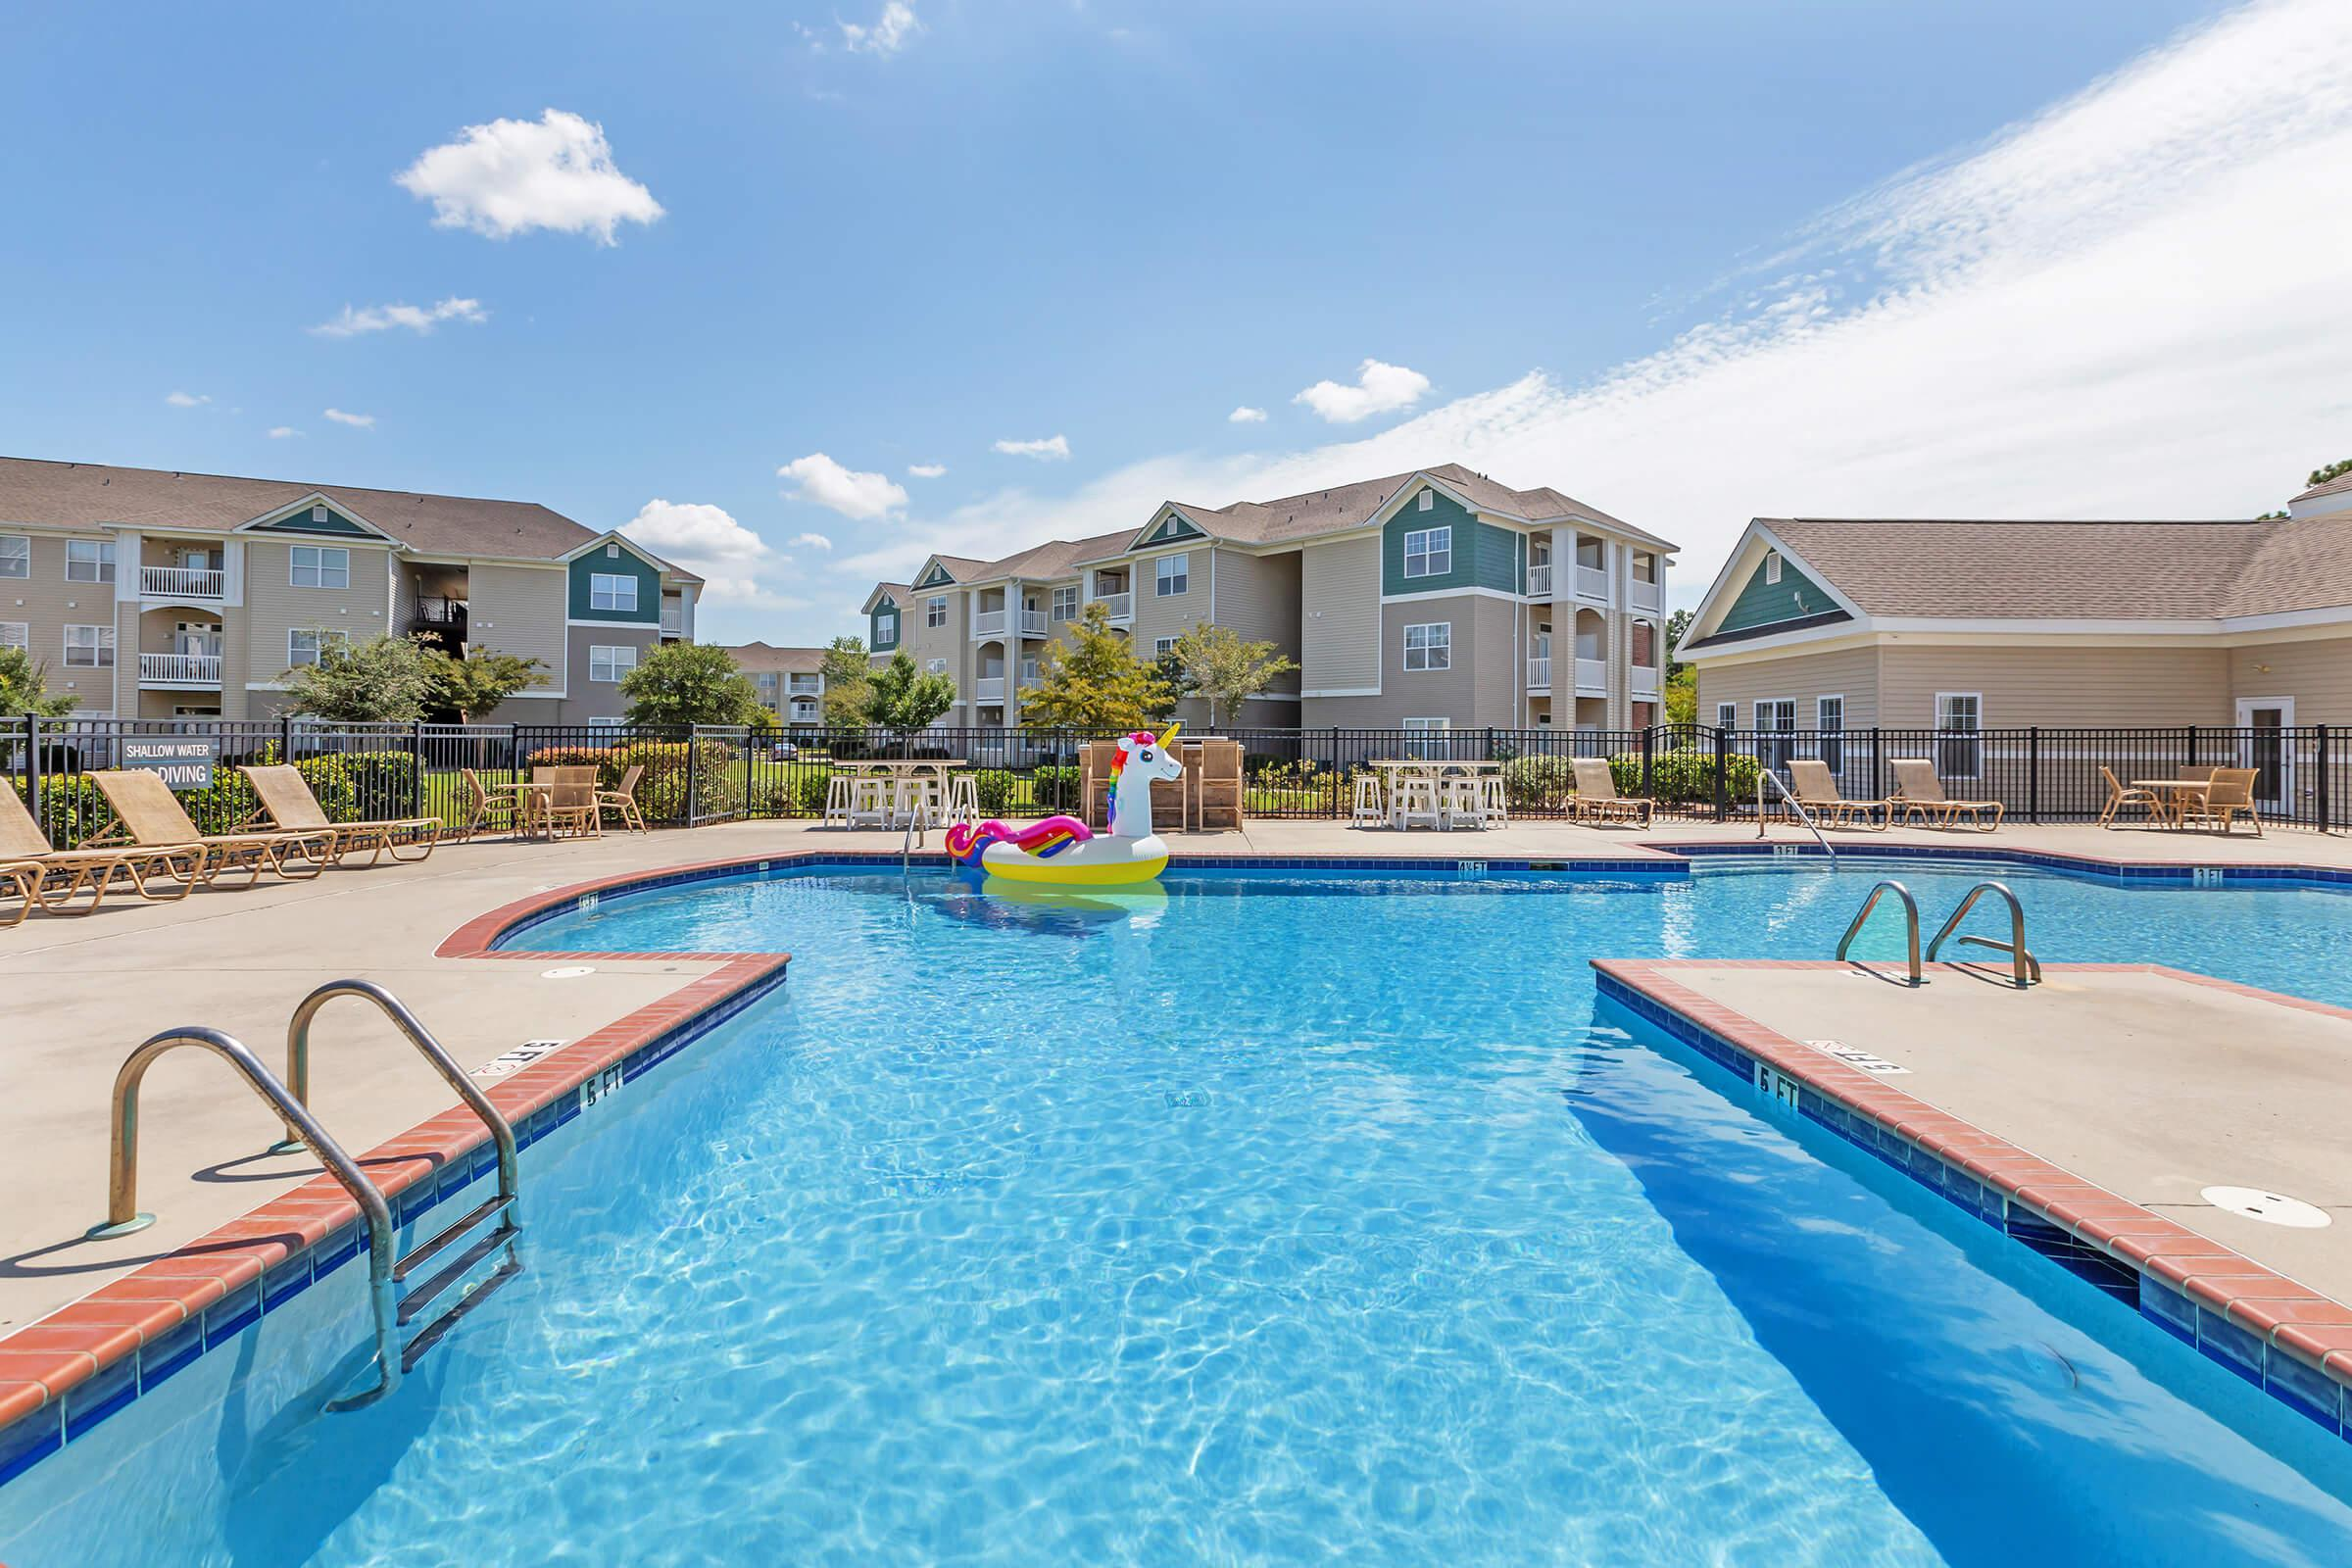 Enjoy Our Shimmering Swimming Pool At New Providence Park In Wilmington, NC